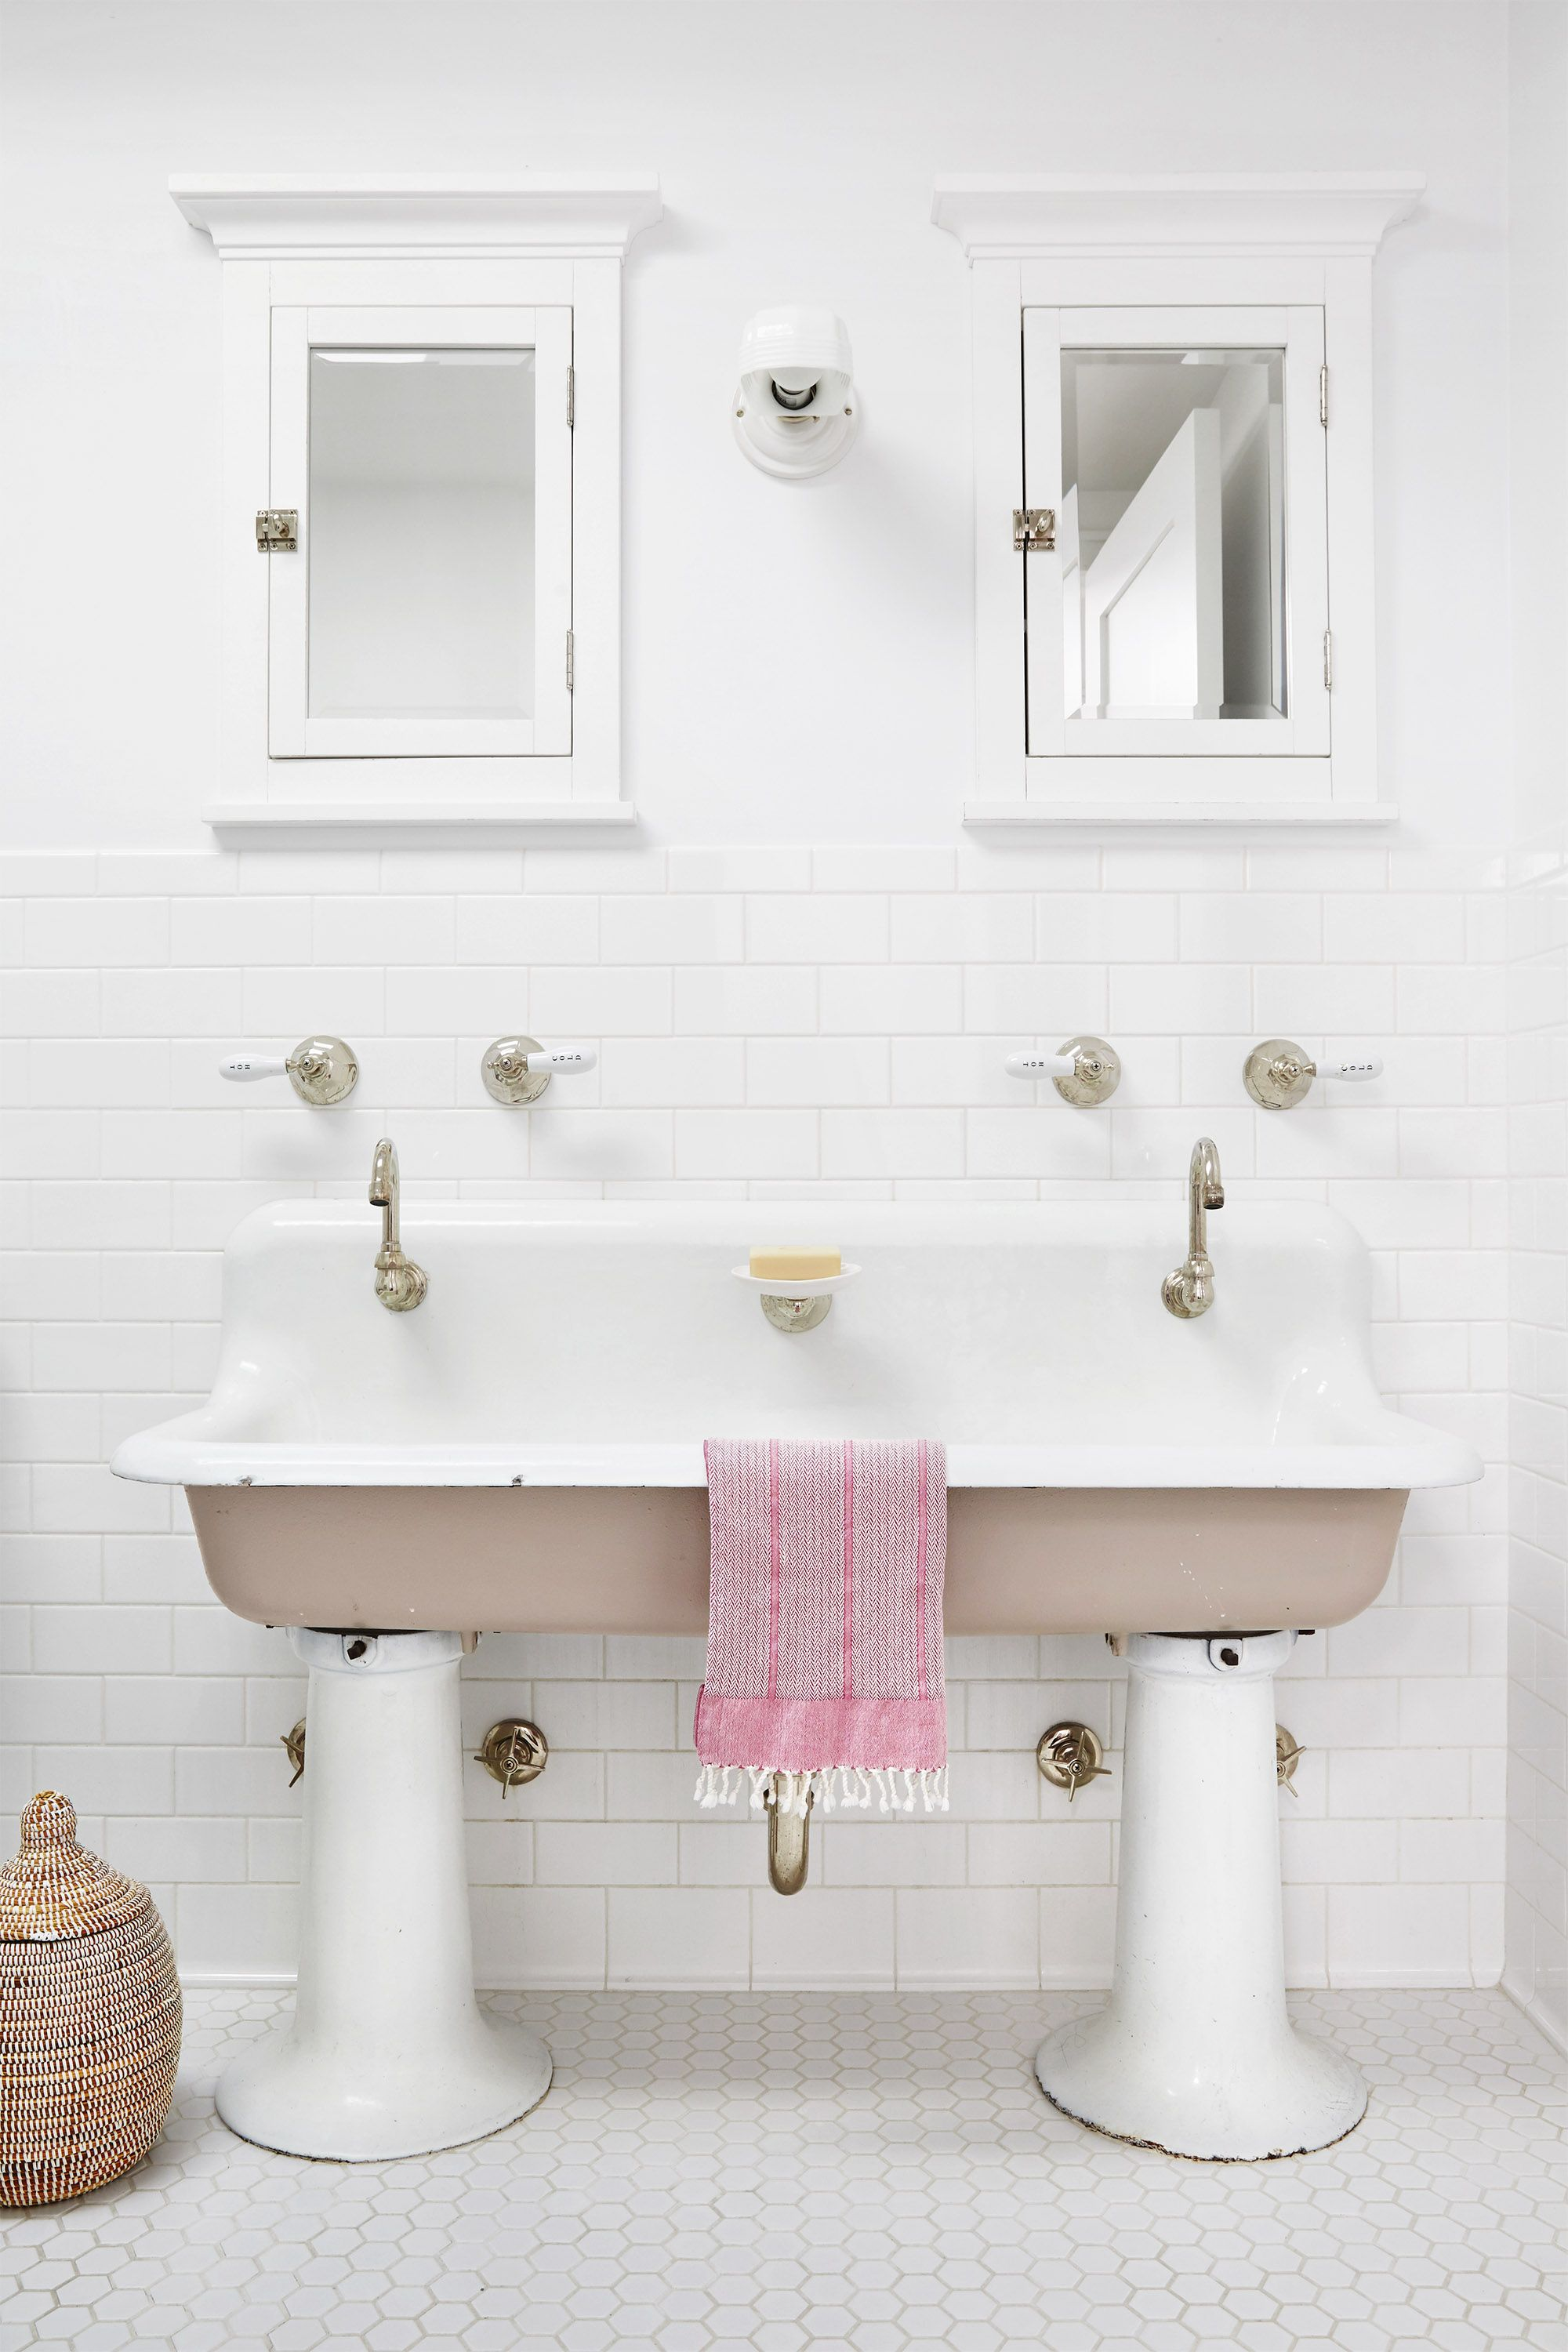 90 Best Bathroom Decorating Ideas   Decor   Design Inspirations for     image